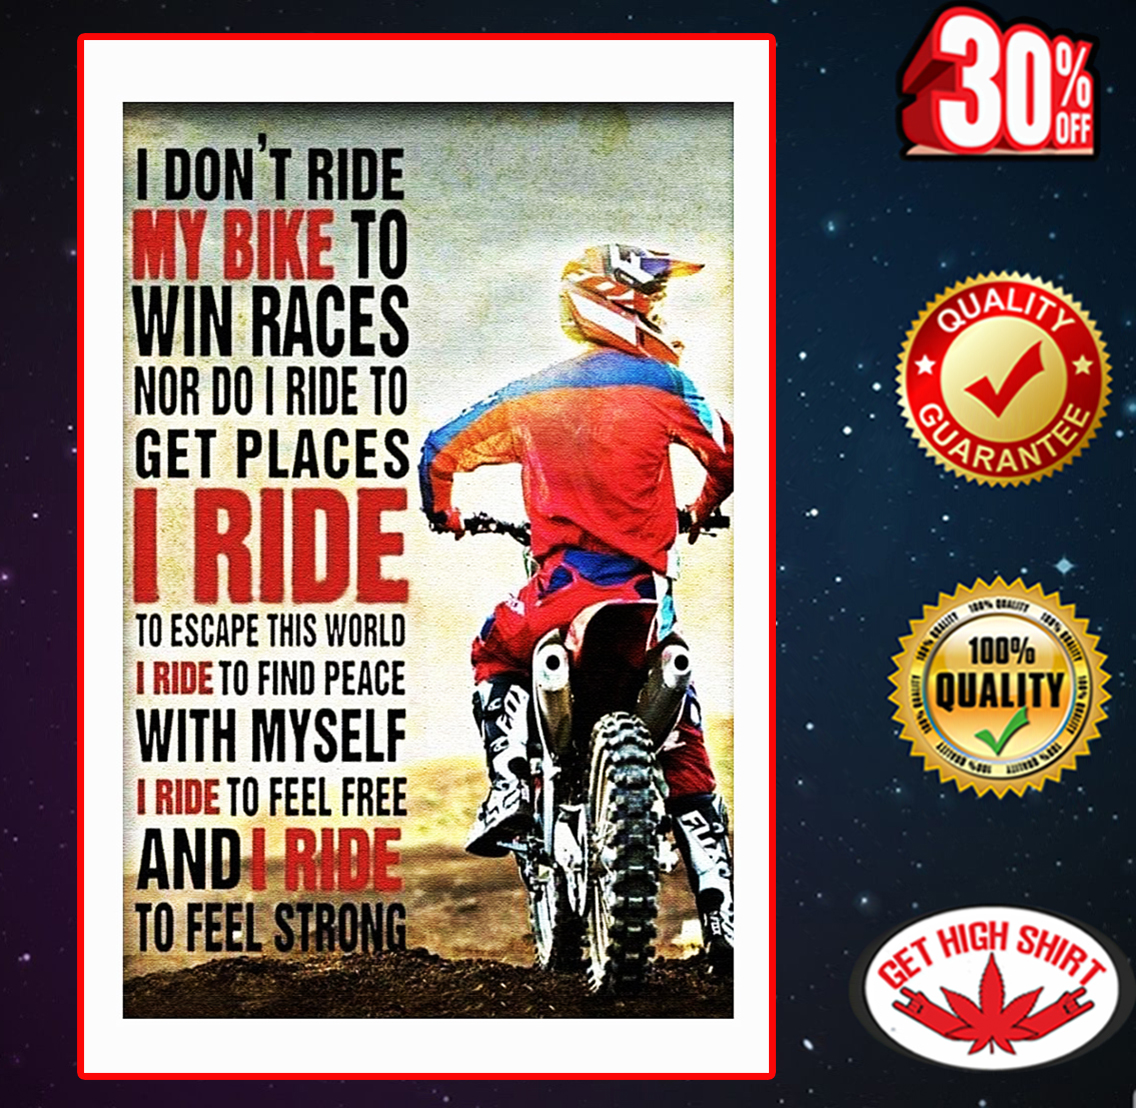 I don't ride my bike to win races poster 11x17